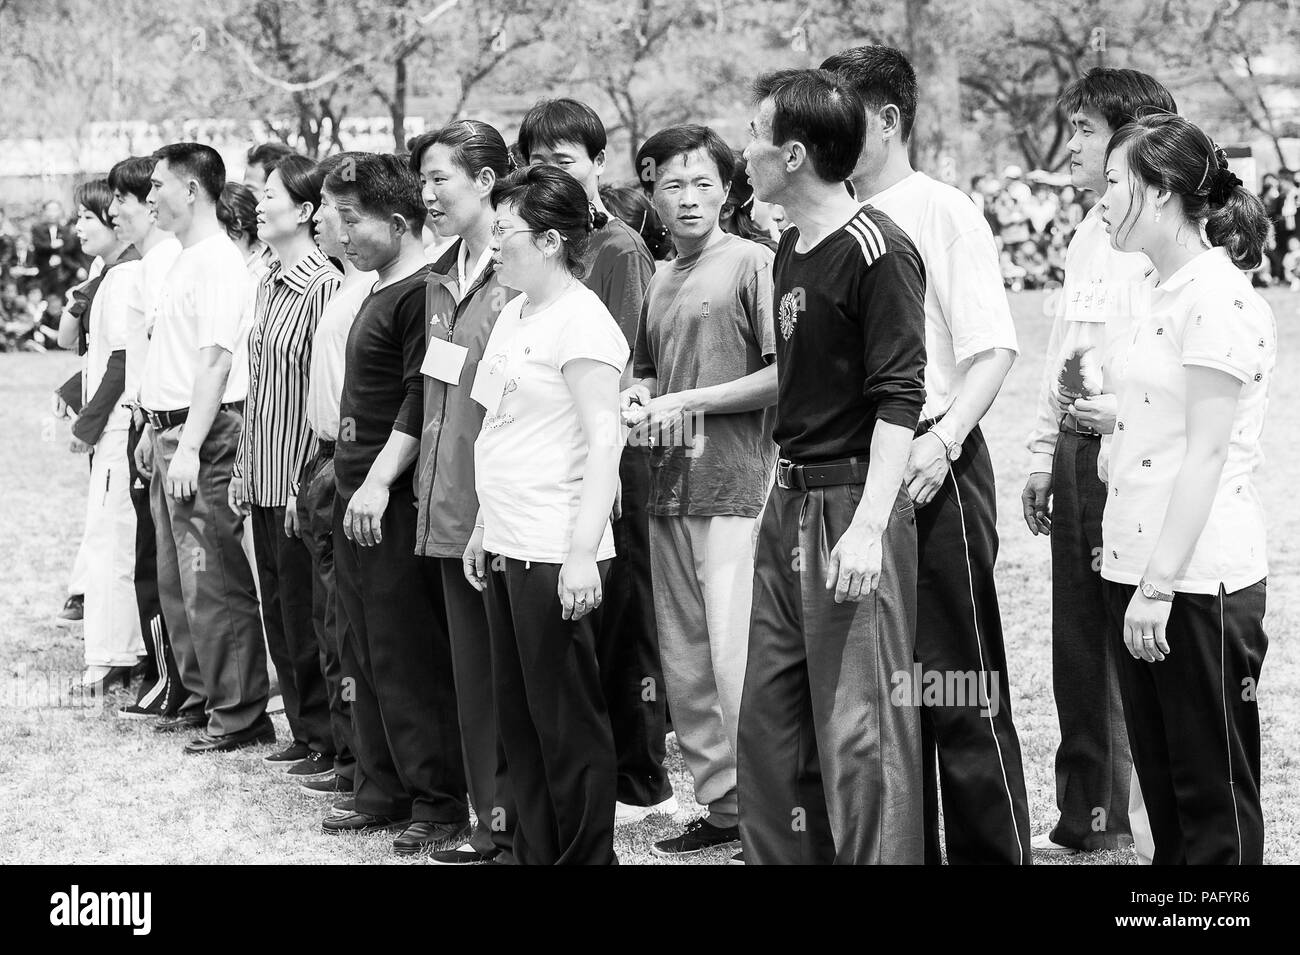 NORTH KOREA - MAY 1, 2012: Korean people are separating into 2 teams for tug of war game during the celebration of the International Worker's Day in N - Stock Image